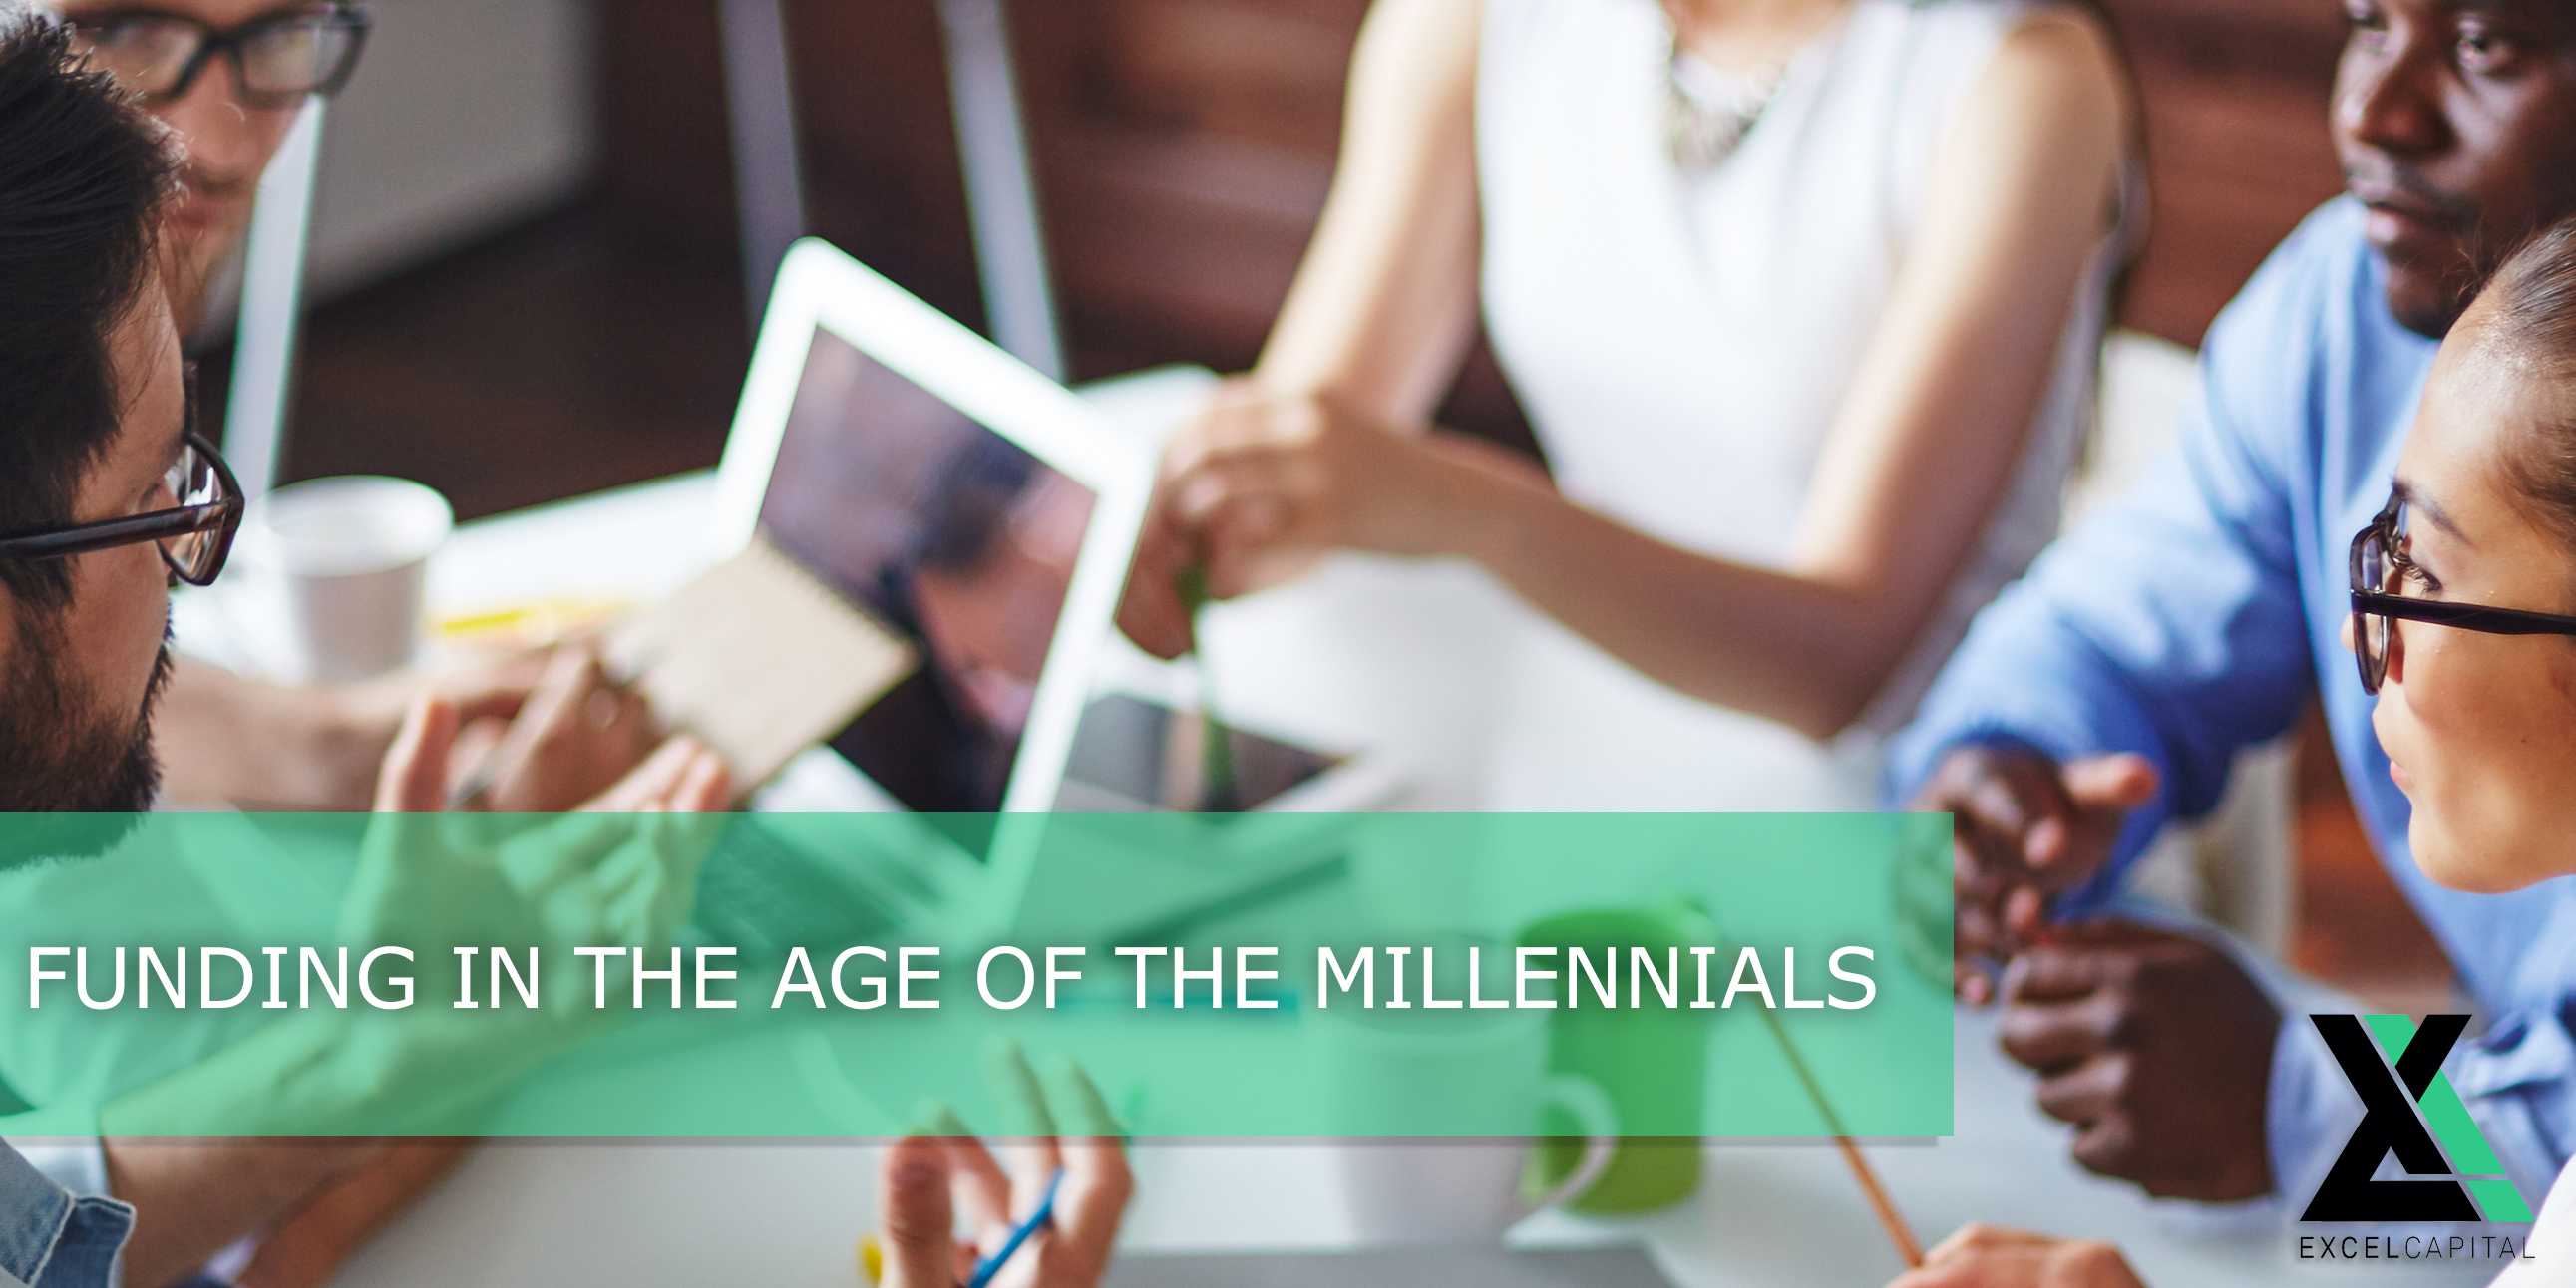 Funding in the Age of the Millennials